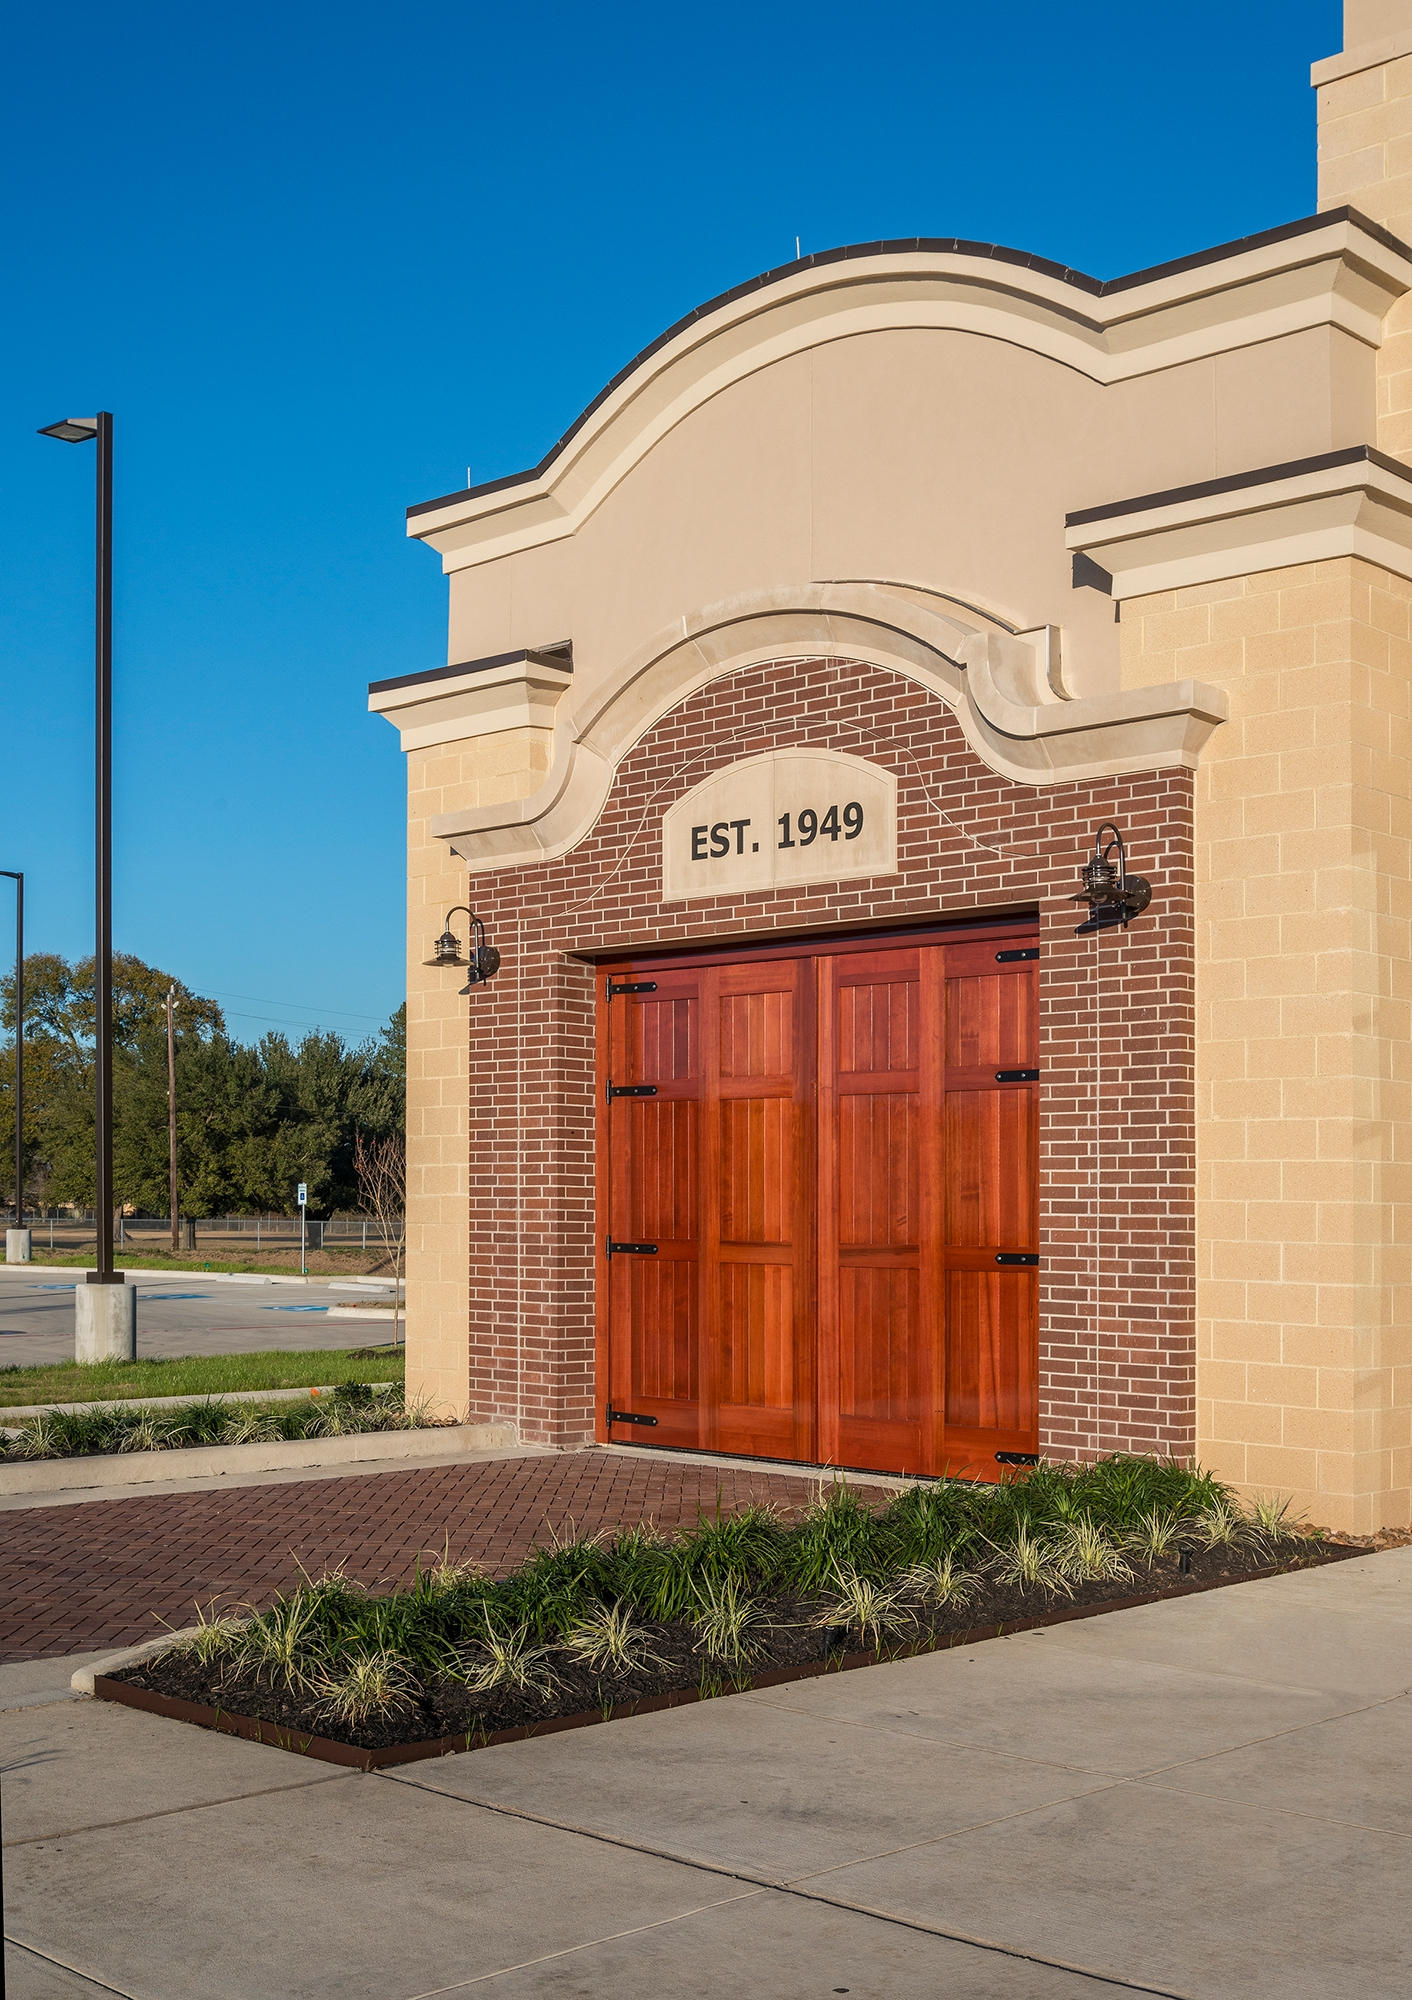 117. Channelview Fire and Administration Building